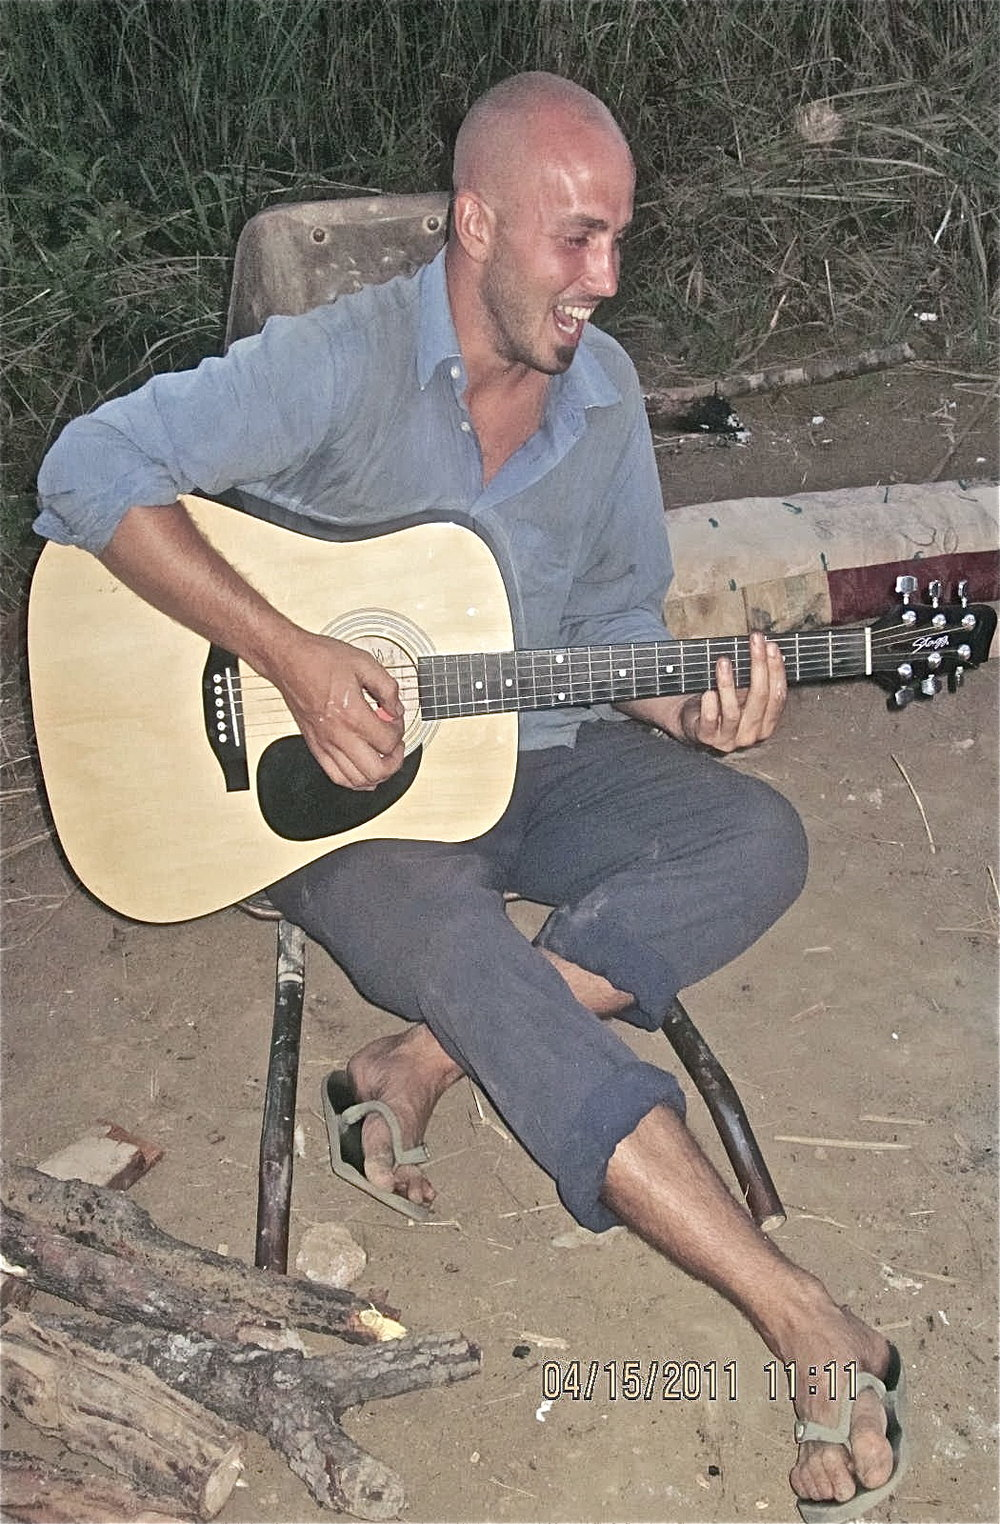 Sitting in a wheelbarrow and rocking songs in Kibombemene, Zambia in 2011 - Photo by Marissa Izma?